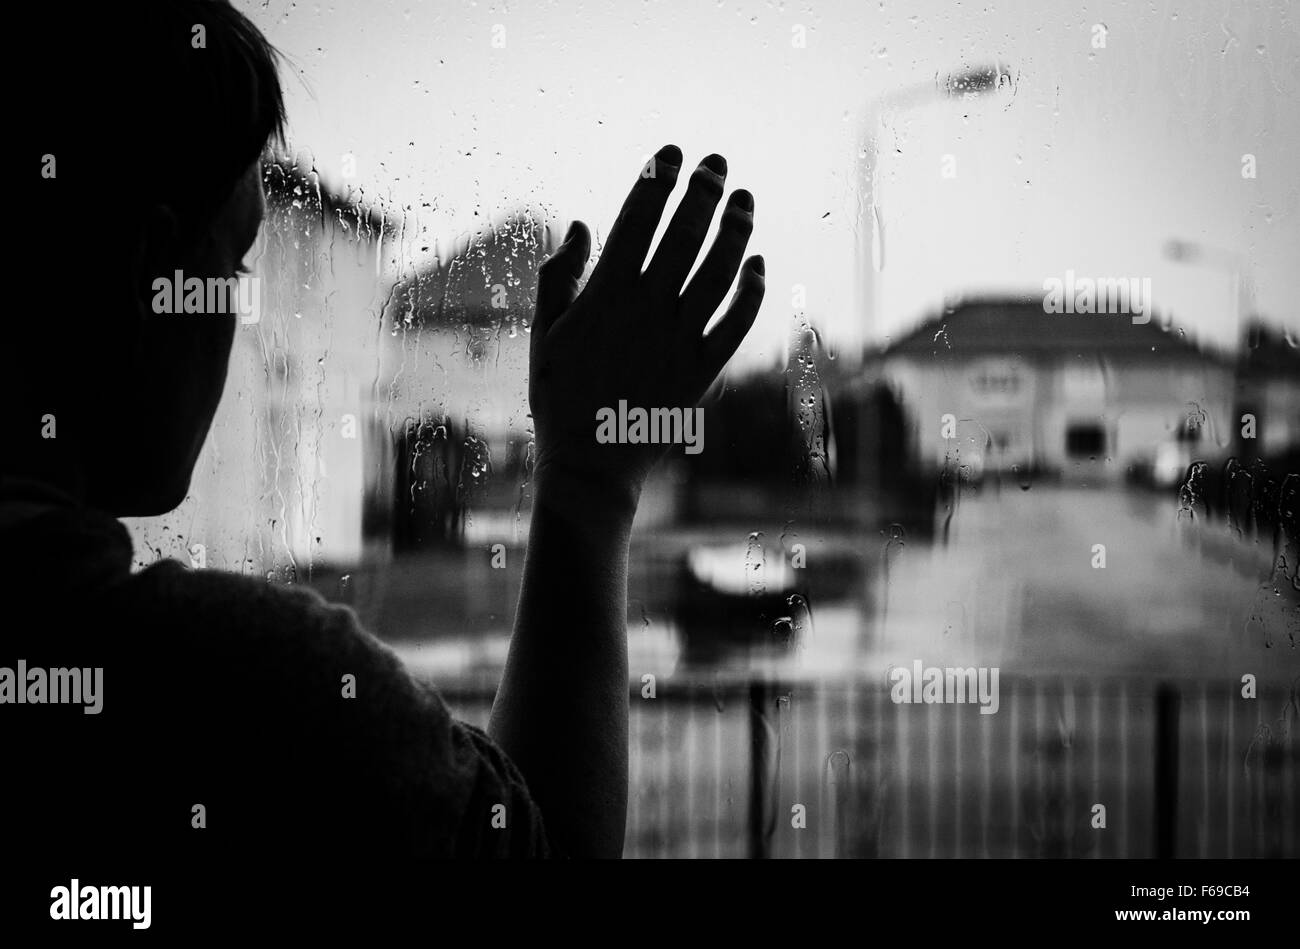 Looking out at the rain - Stock Image